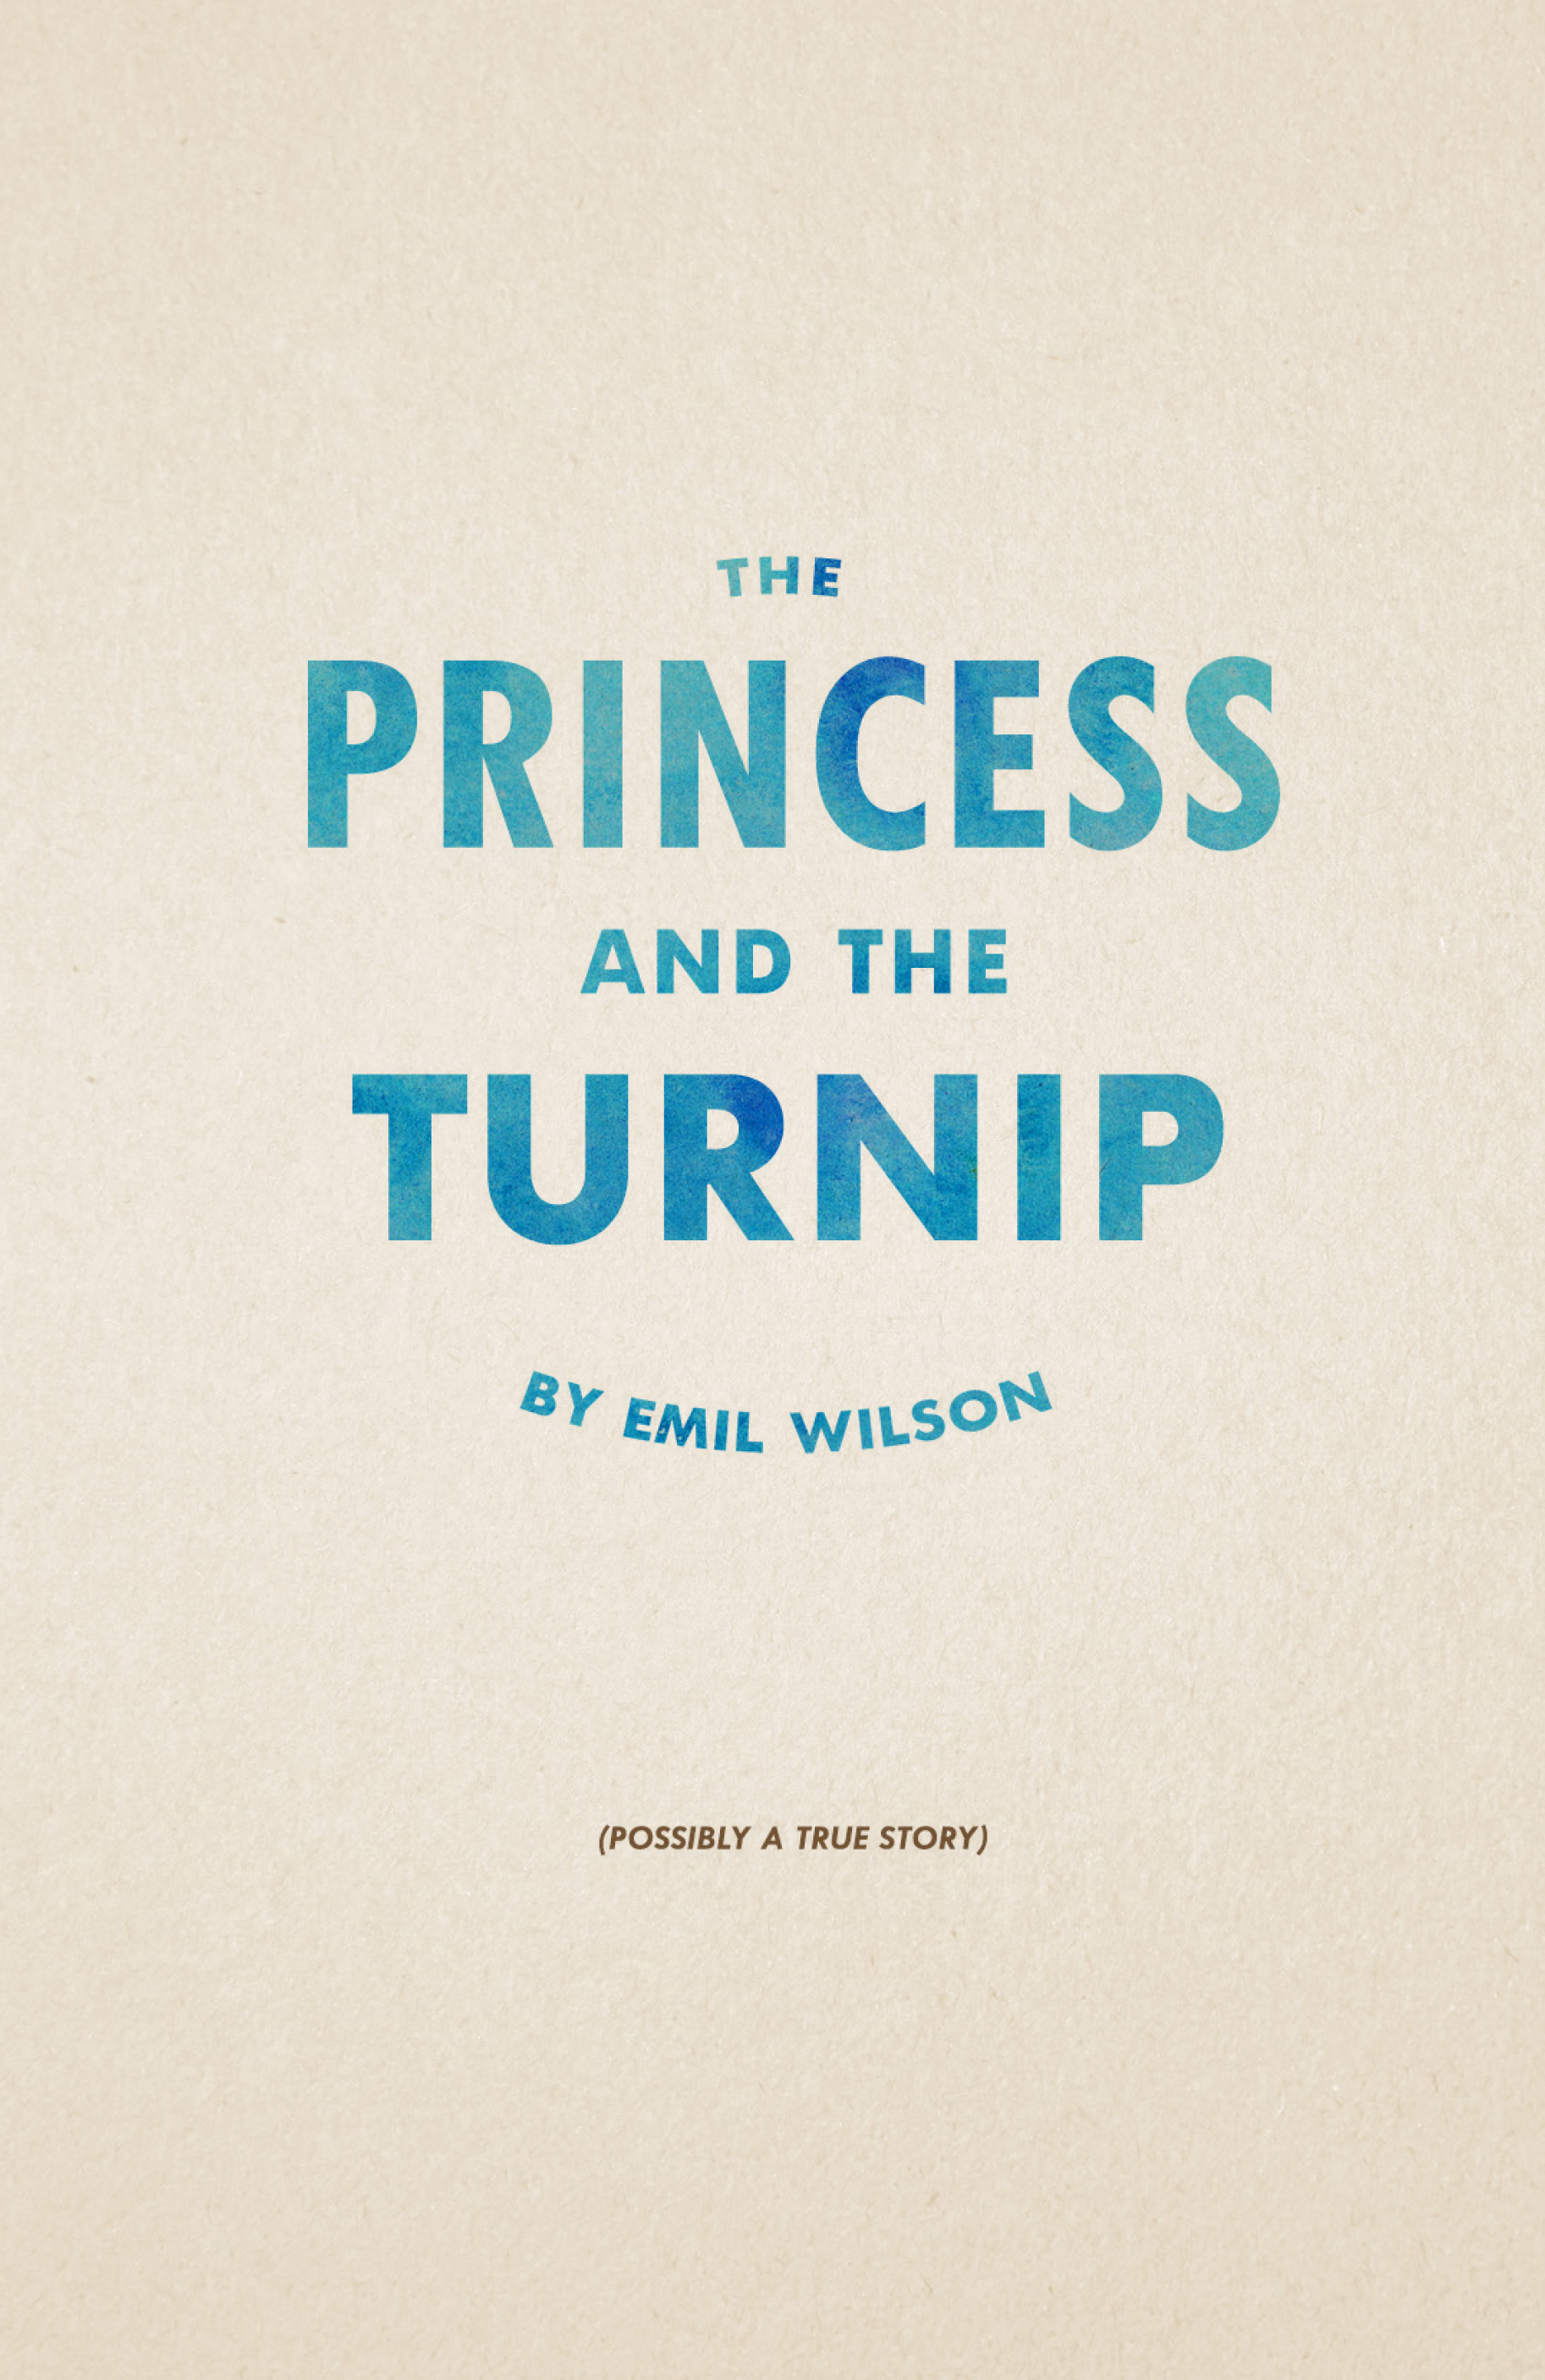 9-The Princess and the Turnip_small-1.jpg